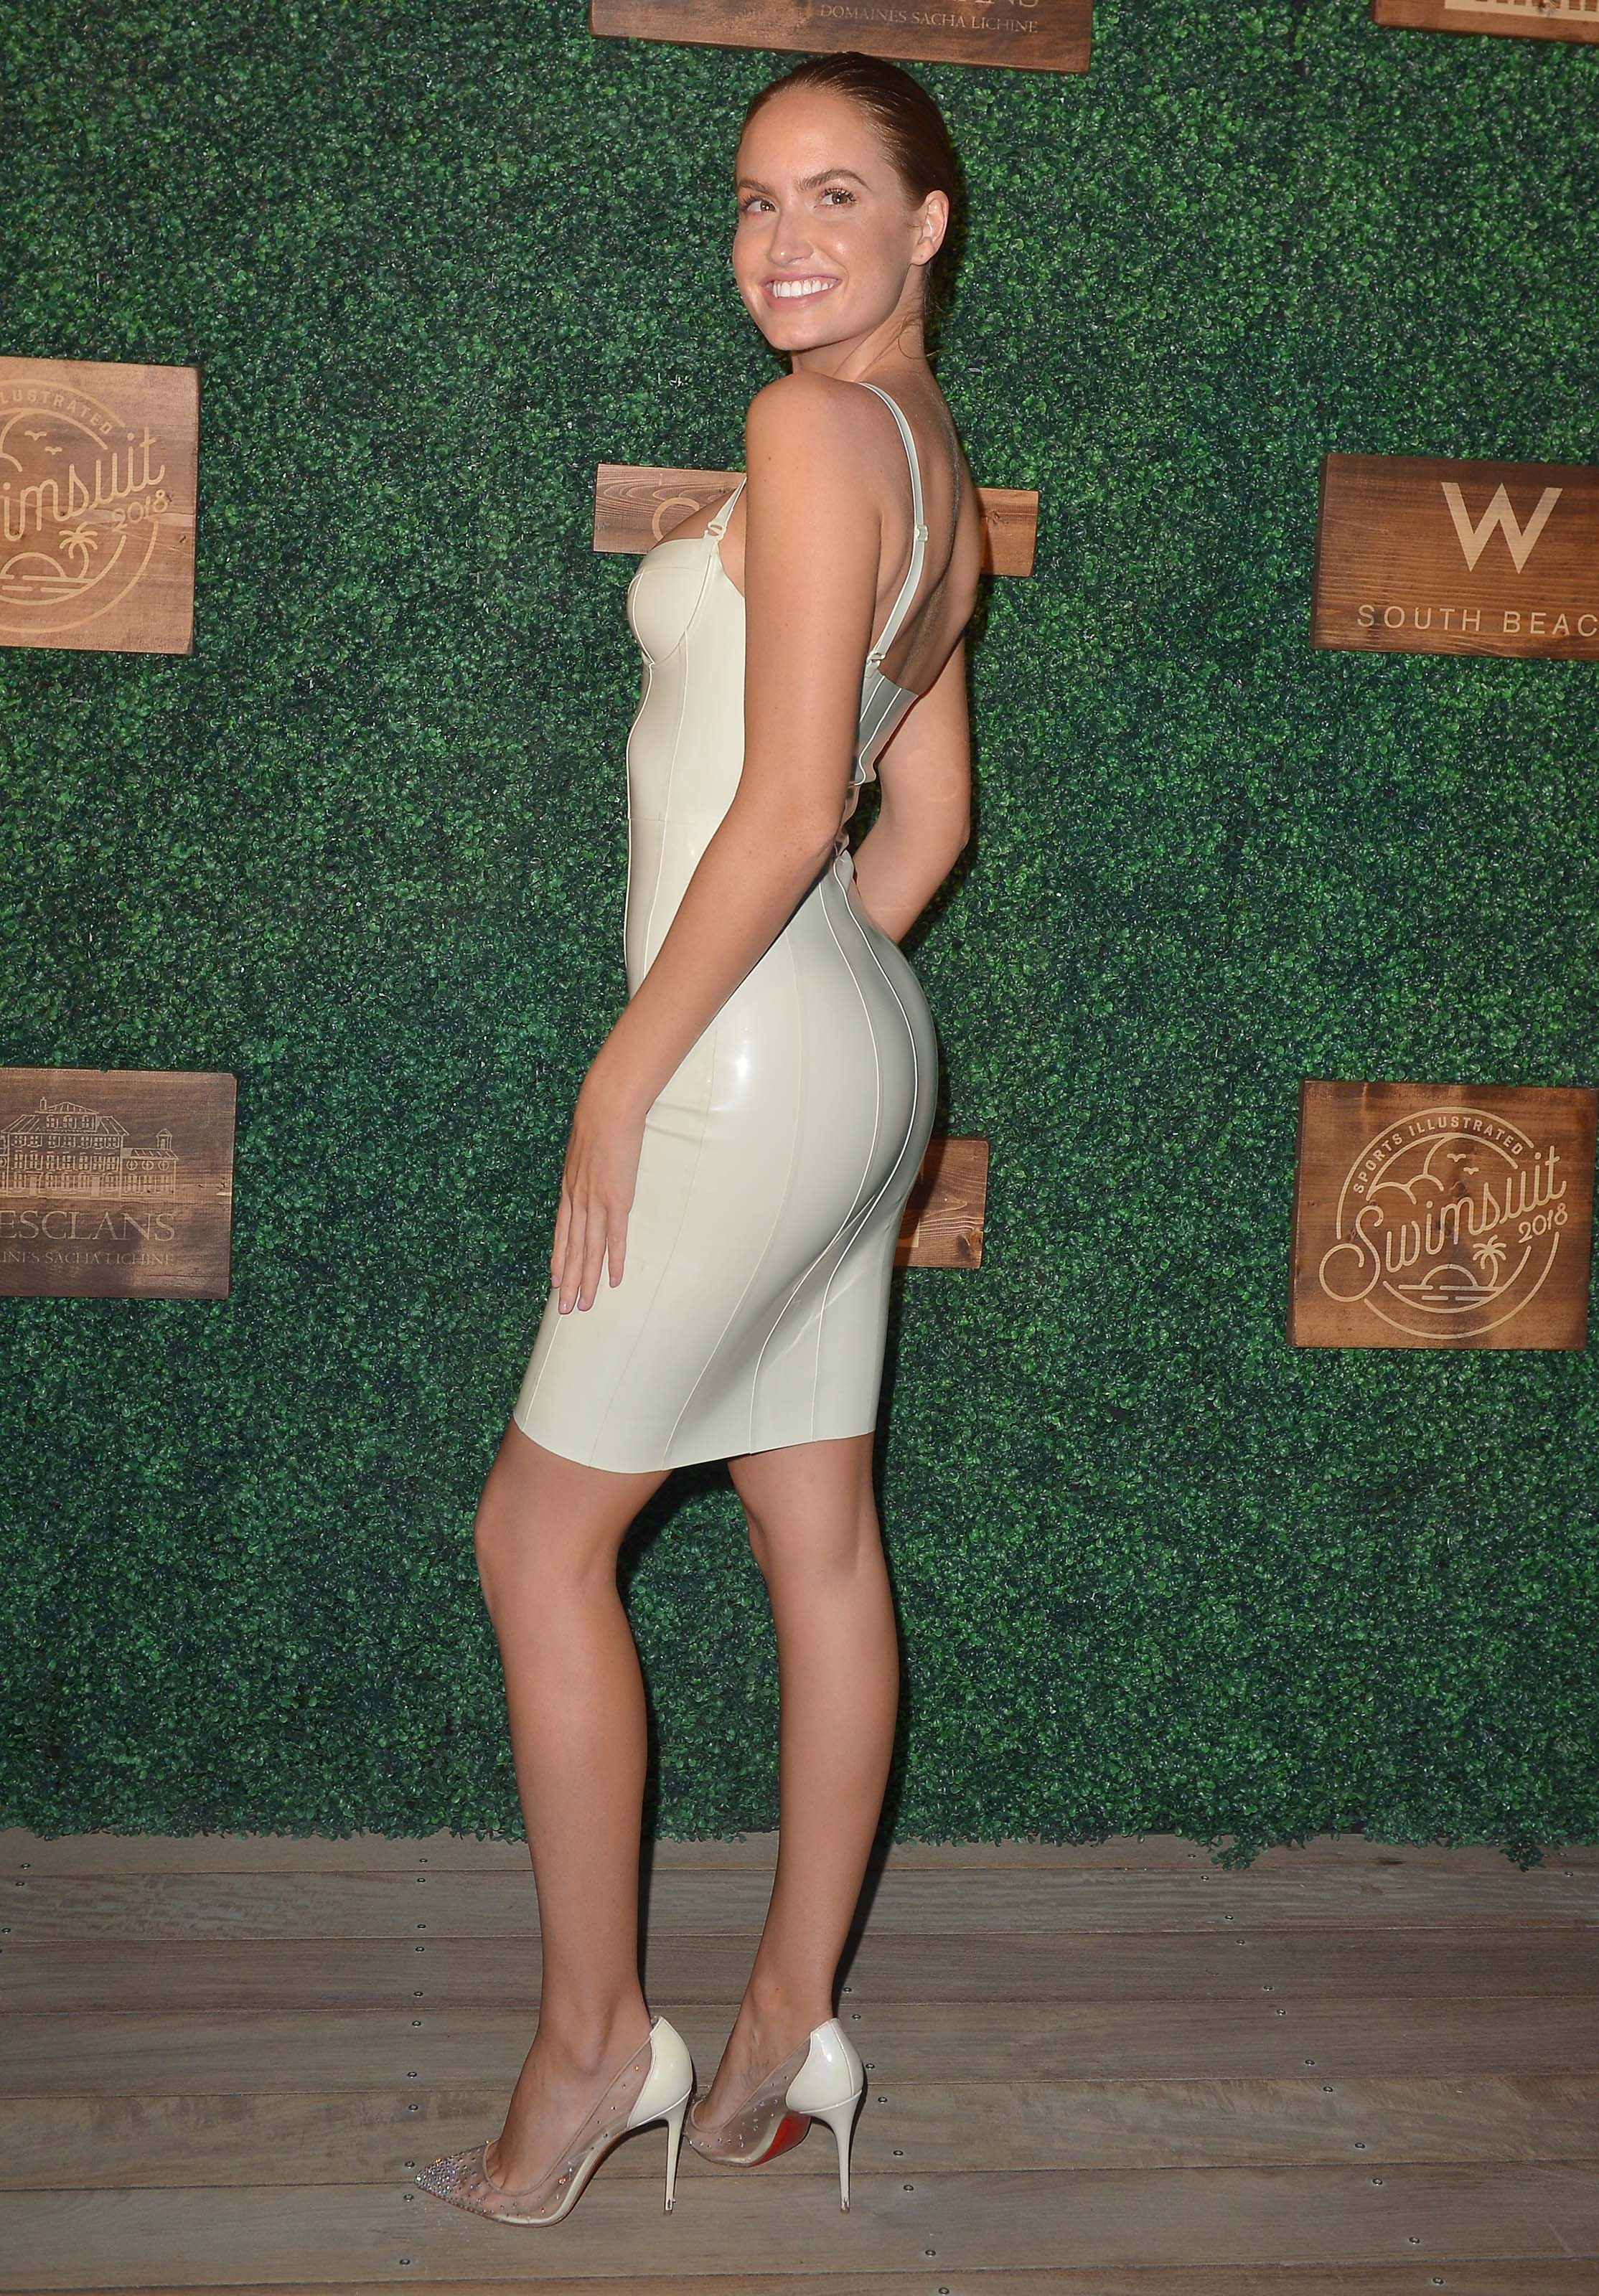 Hayley Kalil attends Sports Illustrated Swimsuit show